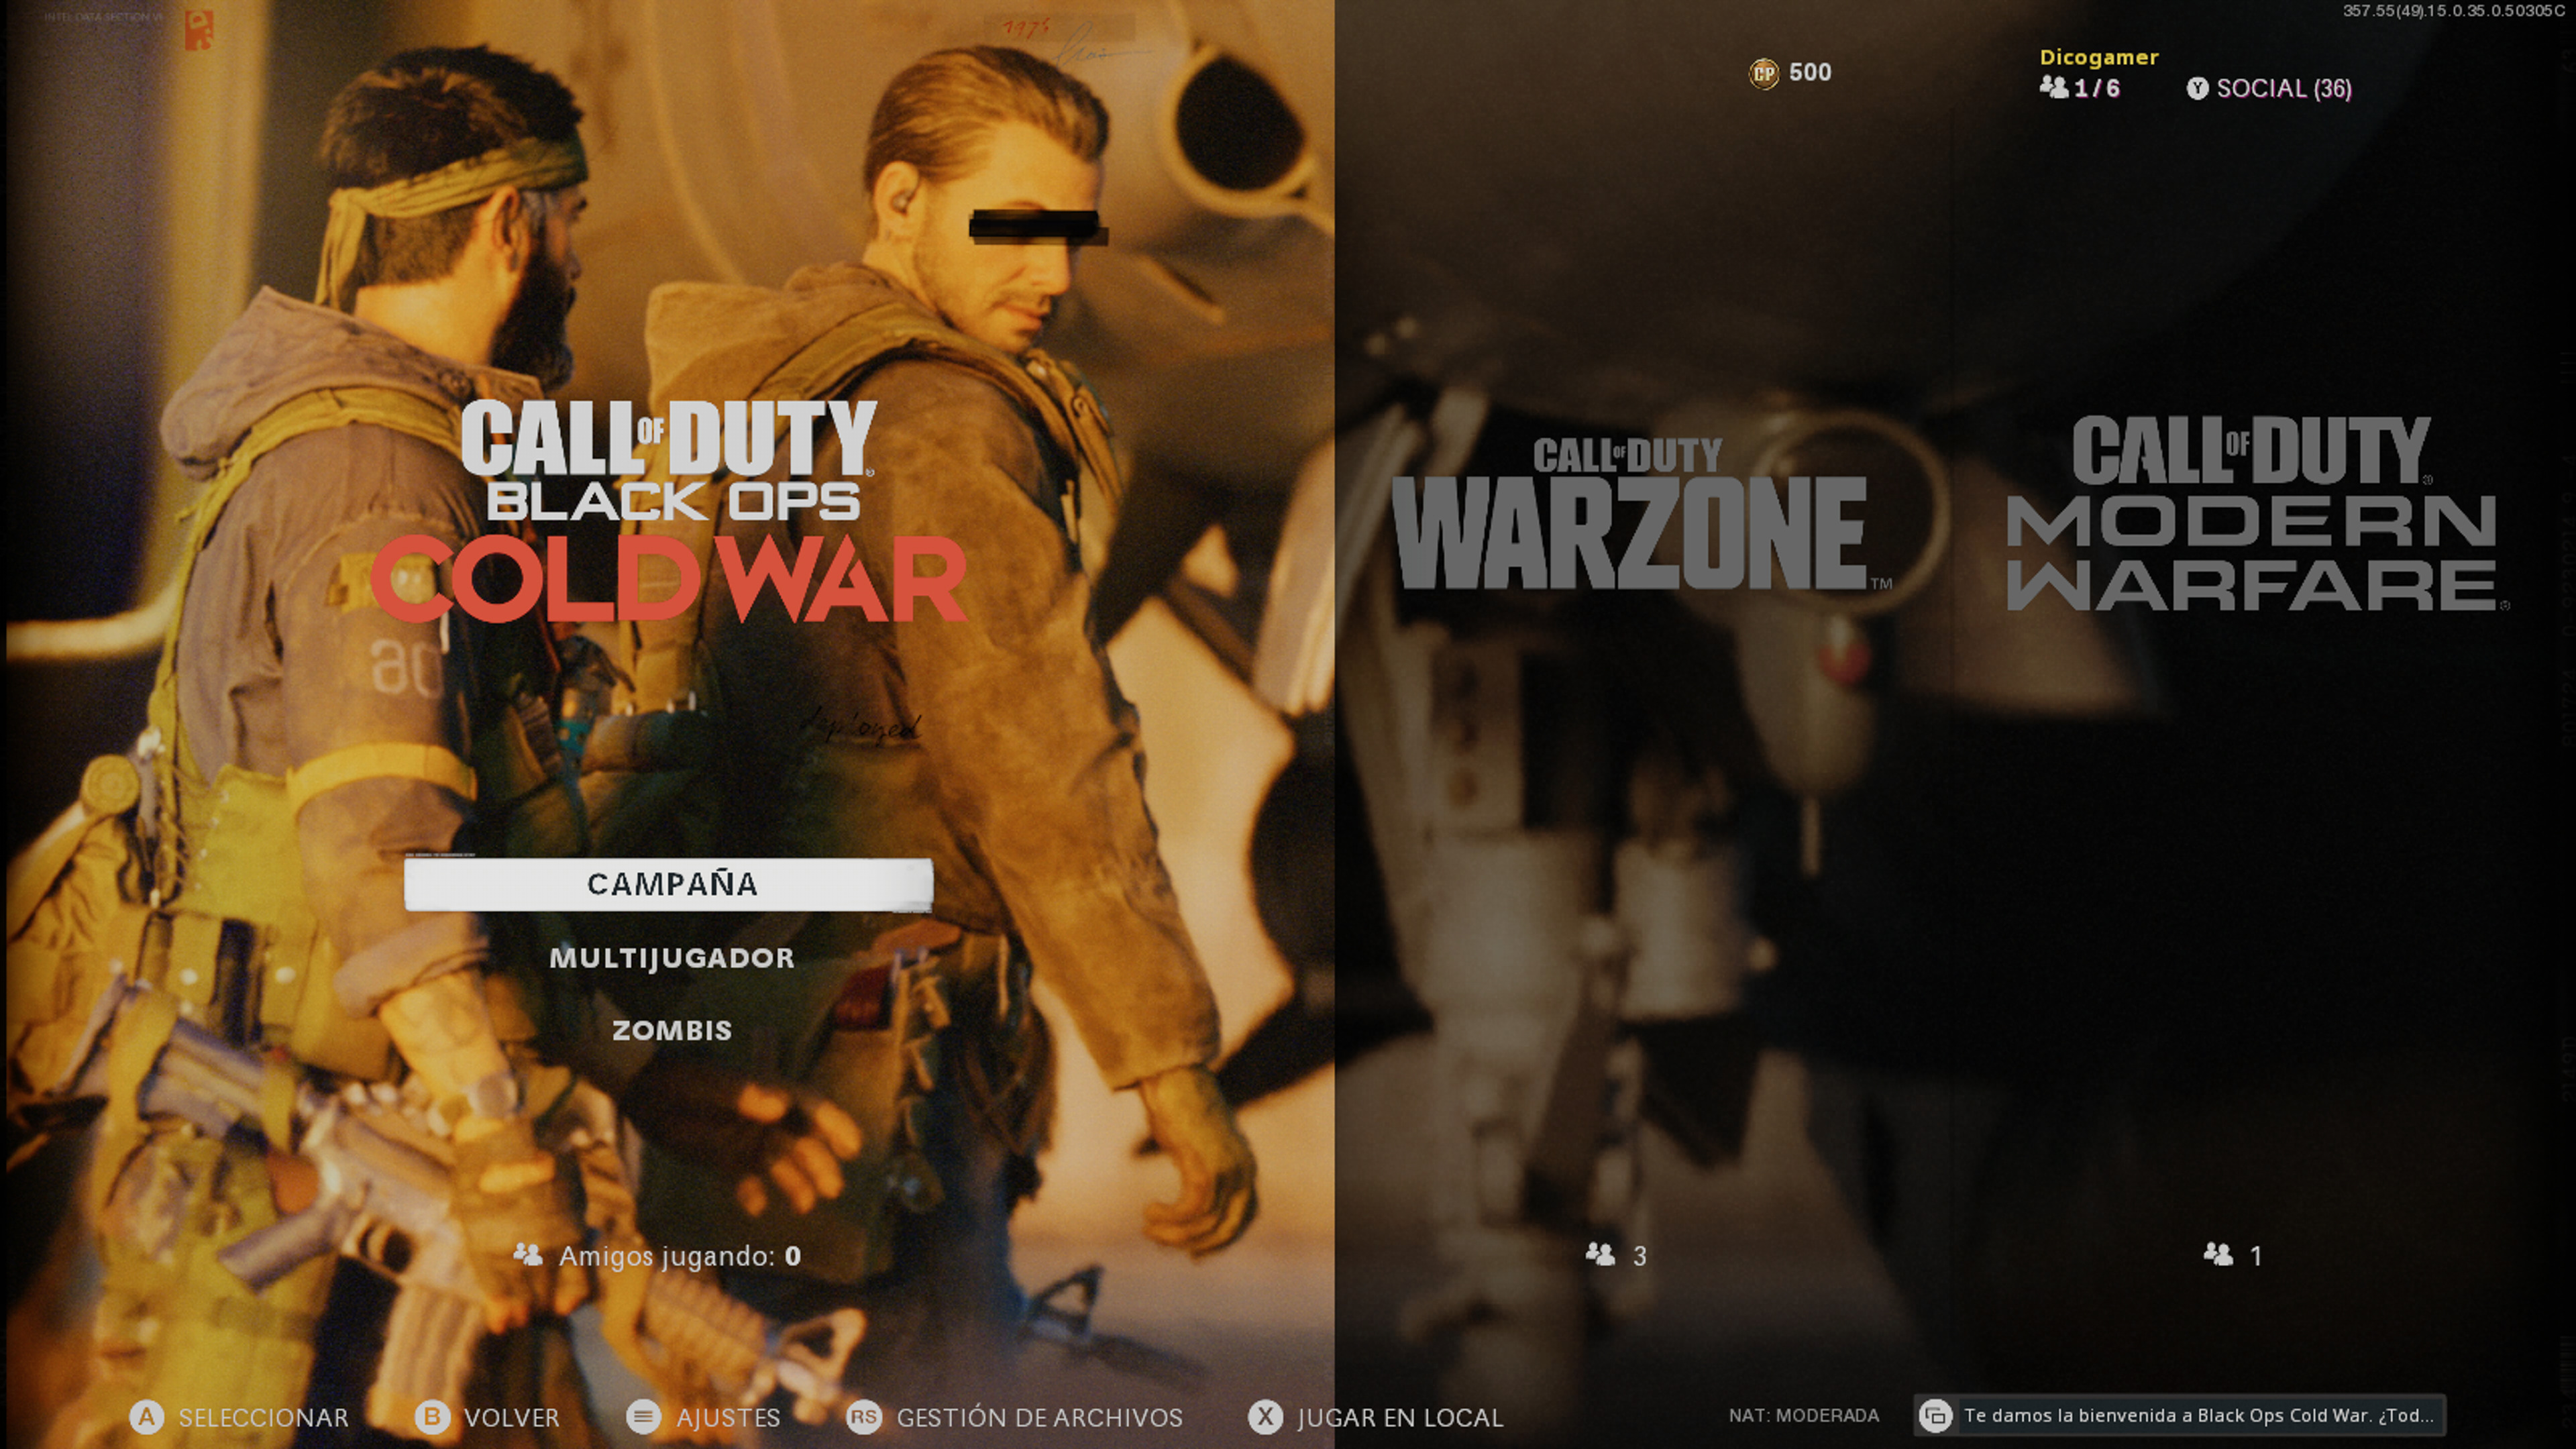 lqka10hysi_call-of-duty-black-ops-cold-war-2020-12-11-20-58-37.jpg